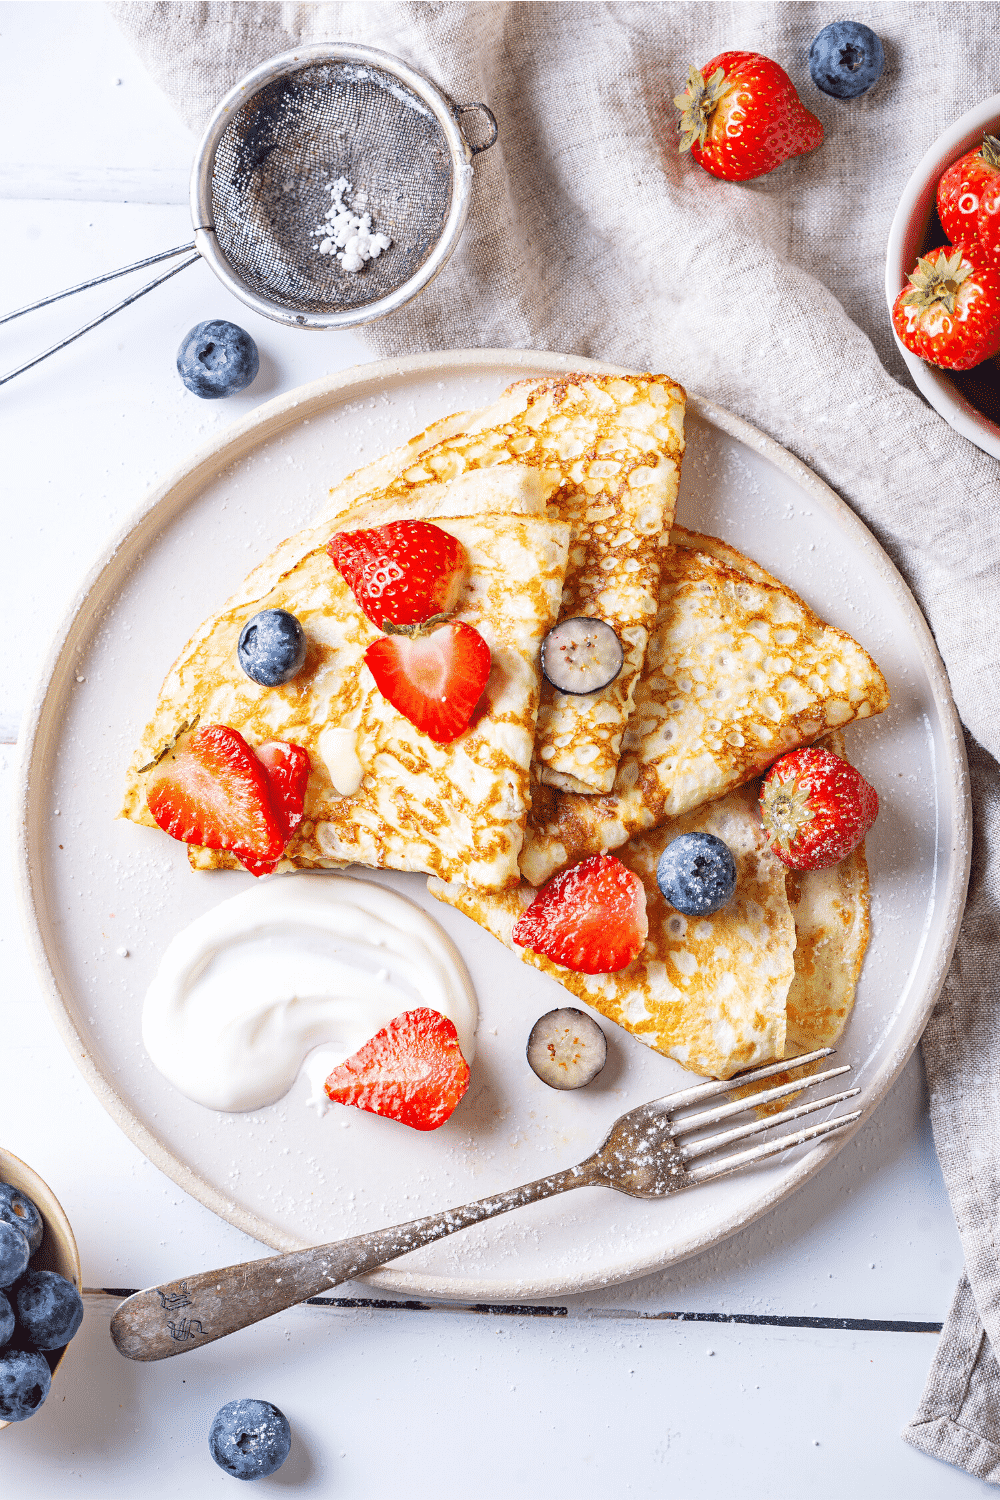 A white plate with four crepes on it. There are slices of blueberries and strawberries on the crepes.